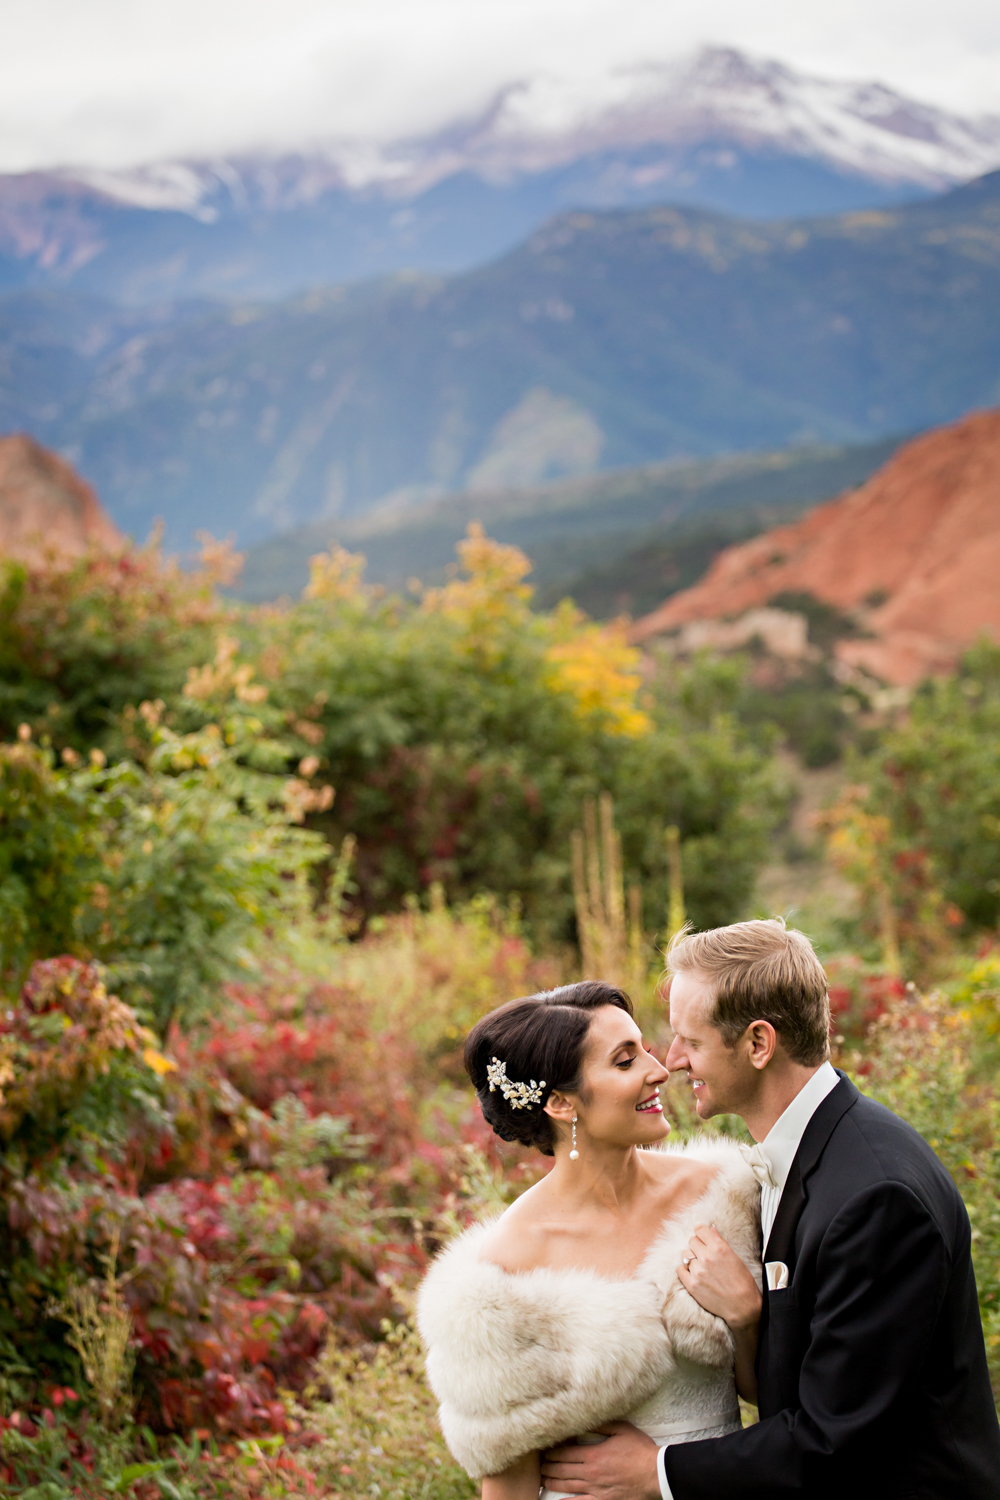 PaigeEden_Weddings_Broadmoor_037.jpg